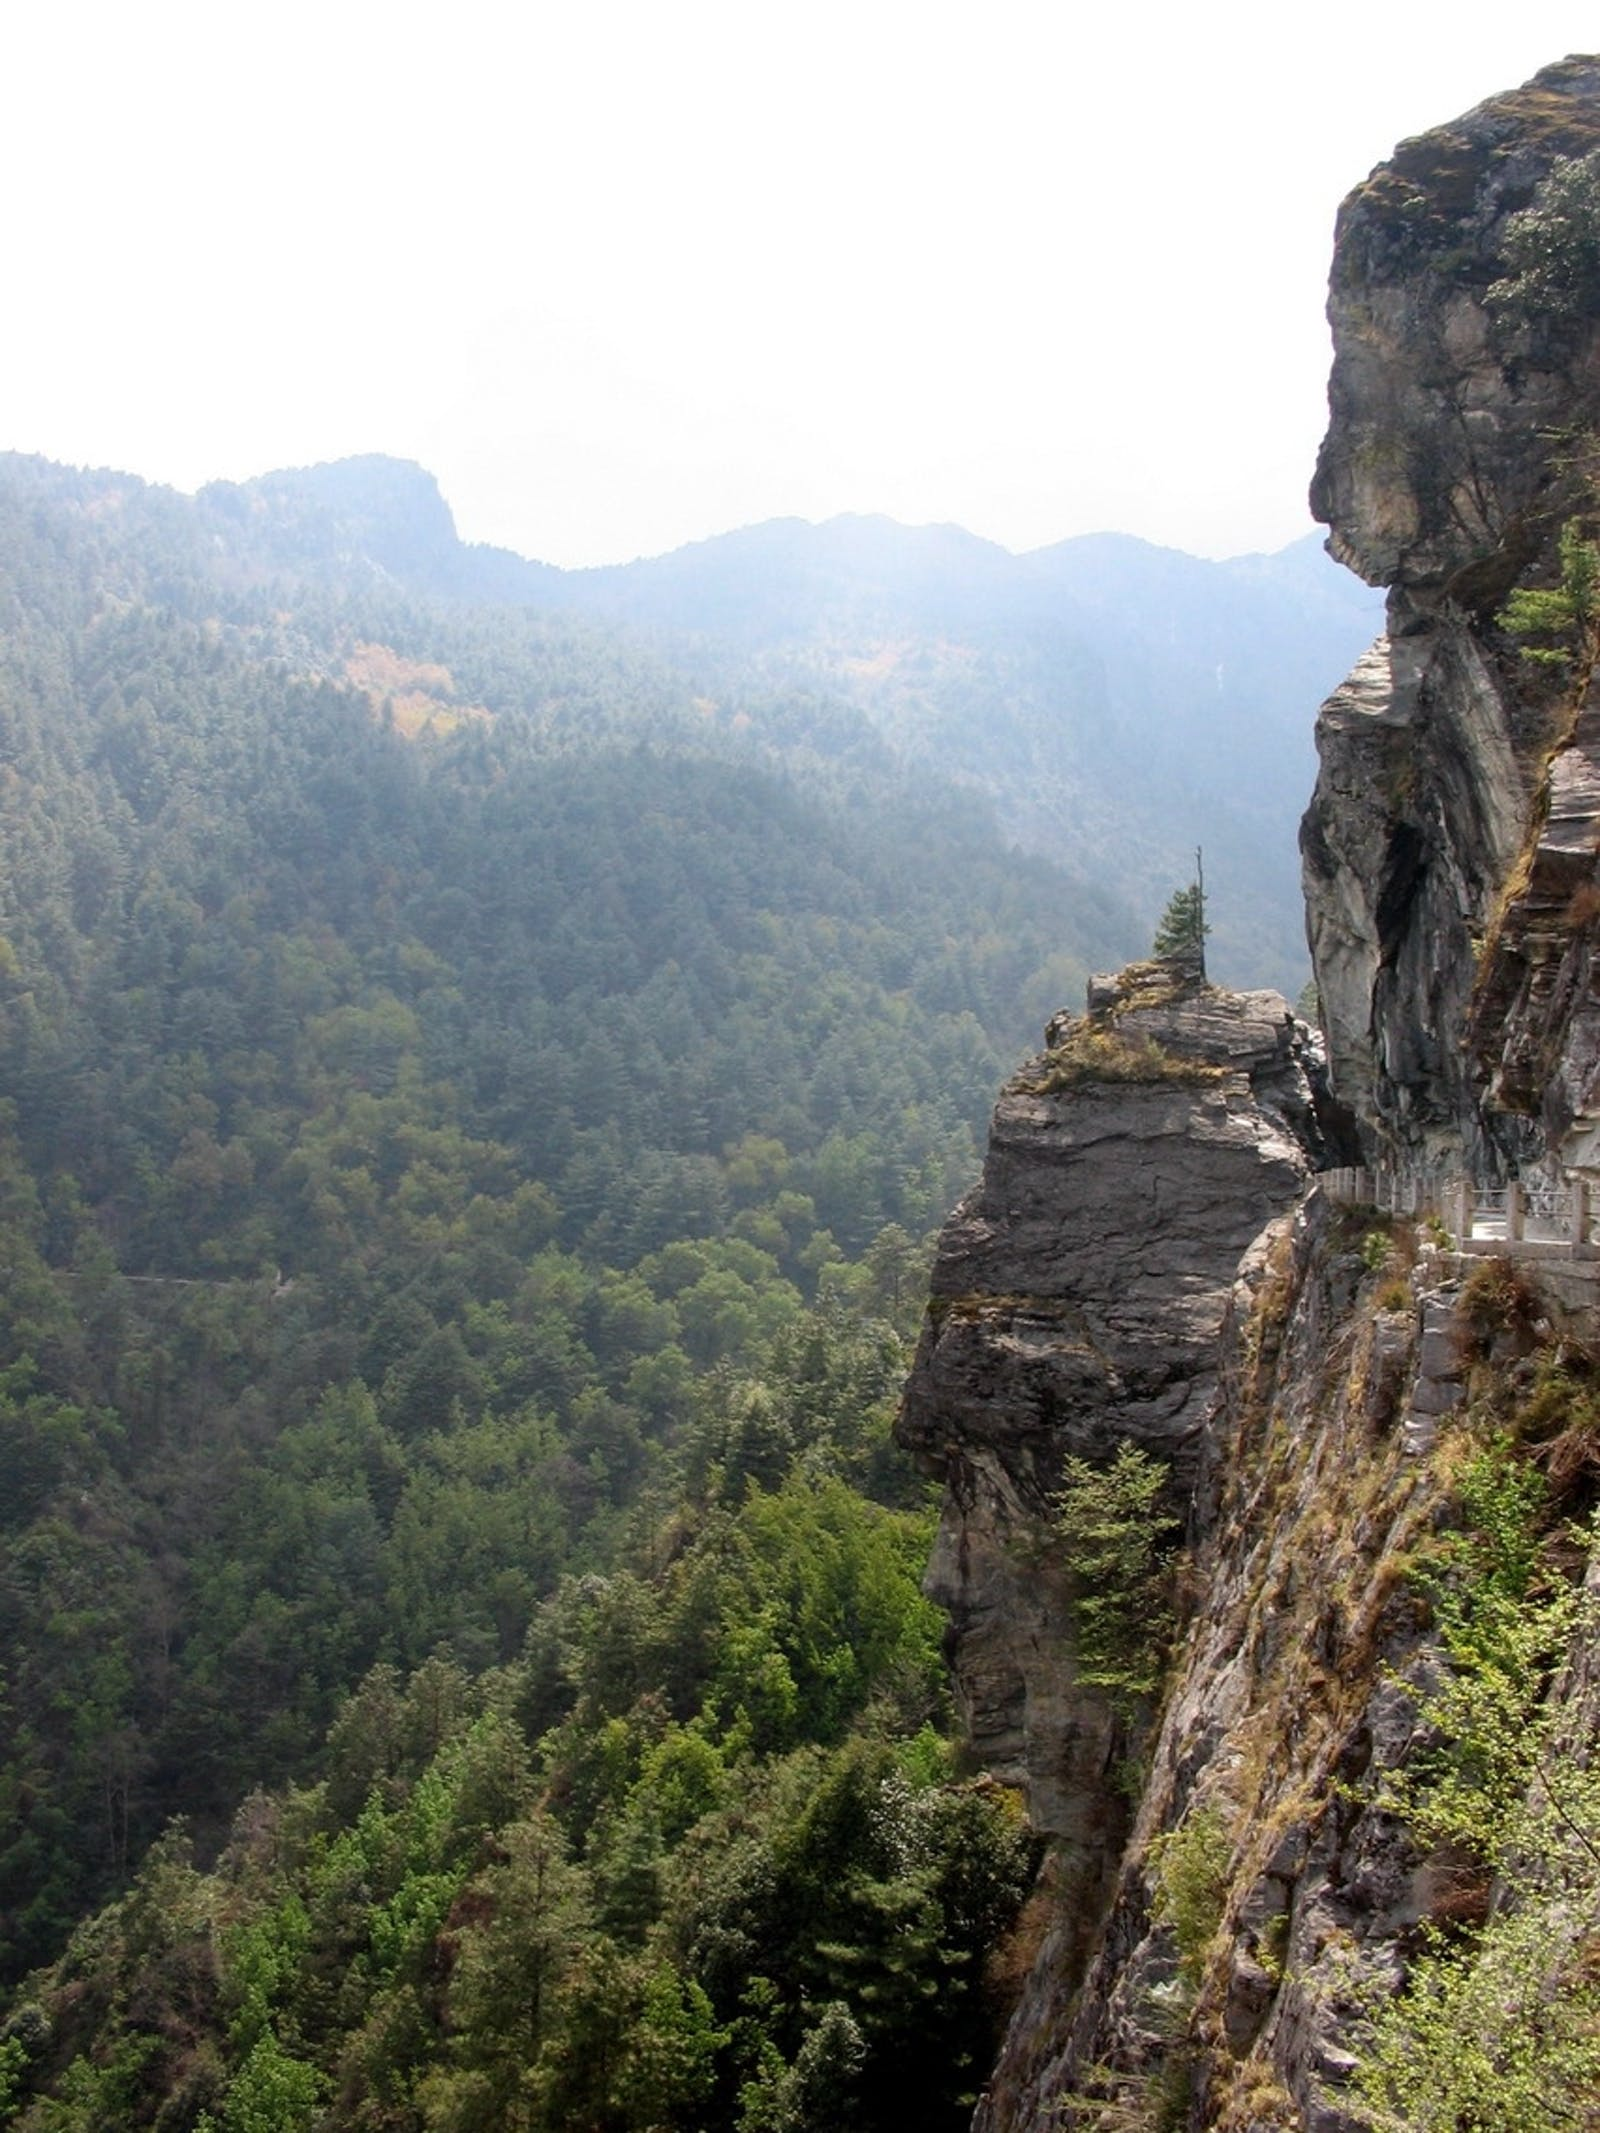 Yunnan Plateau Subtropical Evergreen Forests